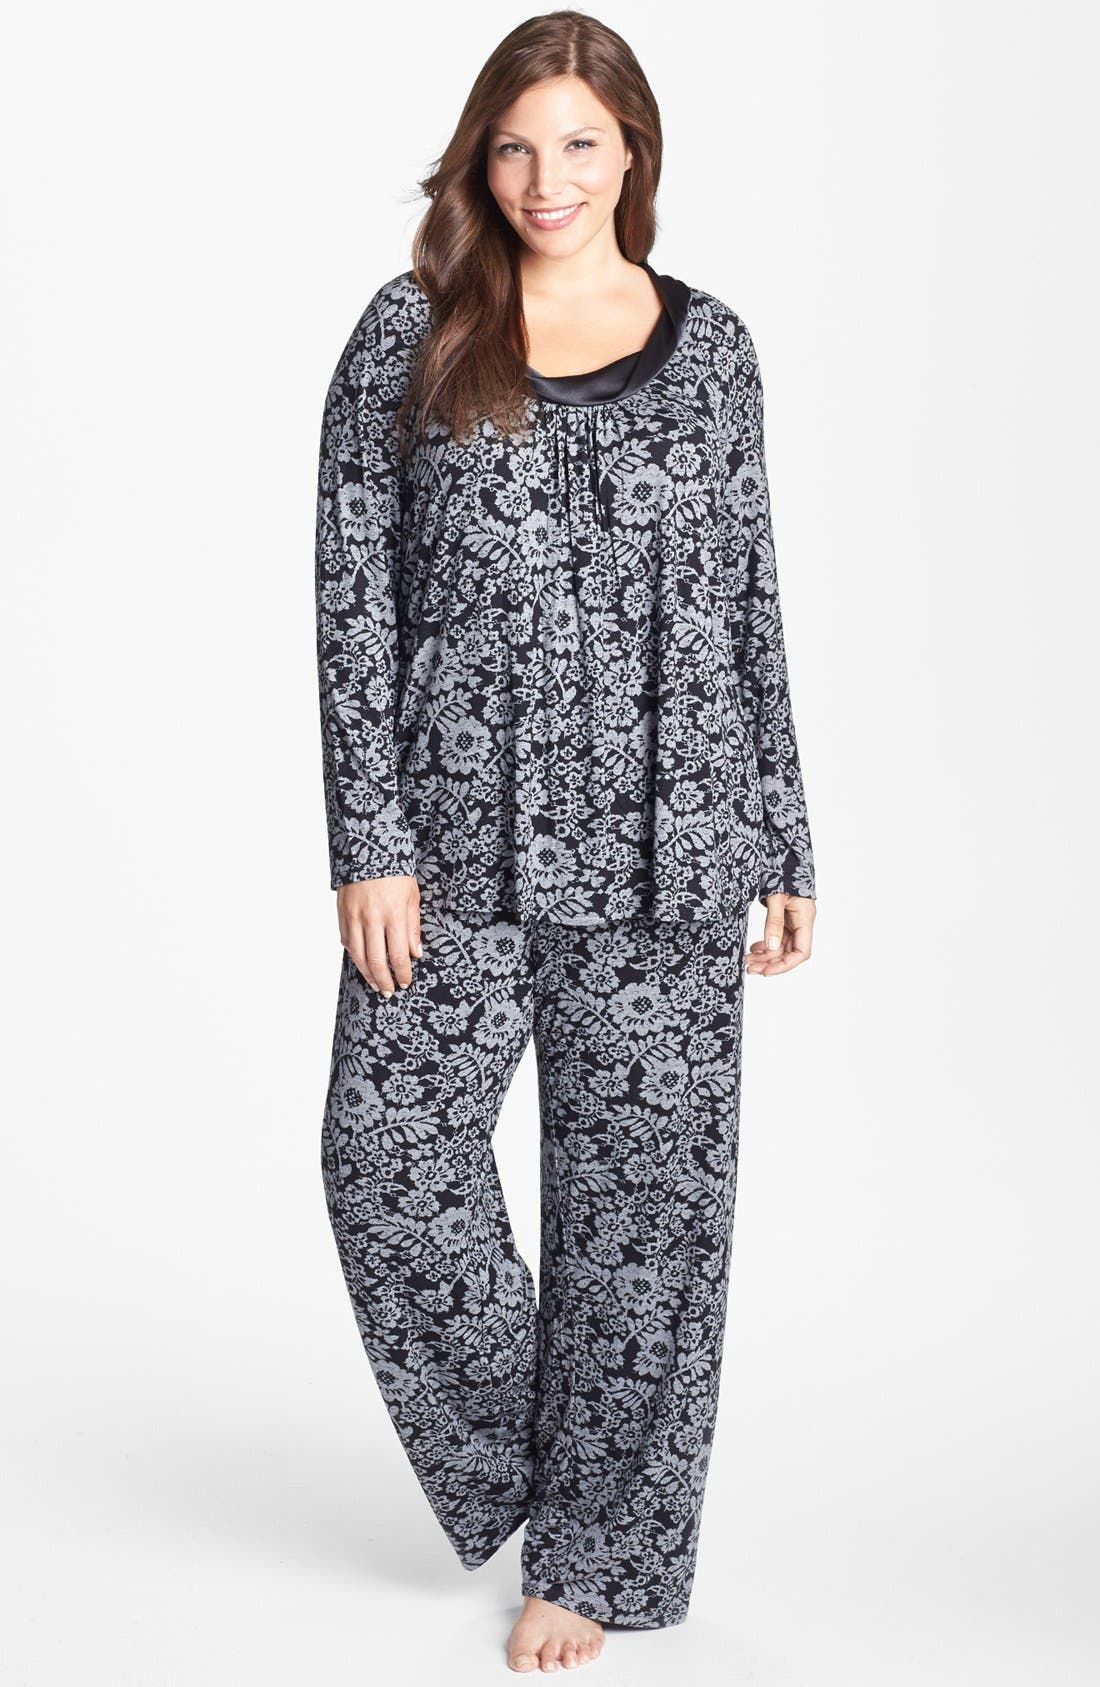 Alternate Image 1 Selected - Midnight by Carole Hochman 'Forever & Always' Pajamas (Plus Size) (Online Only)